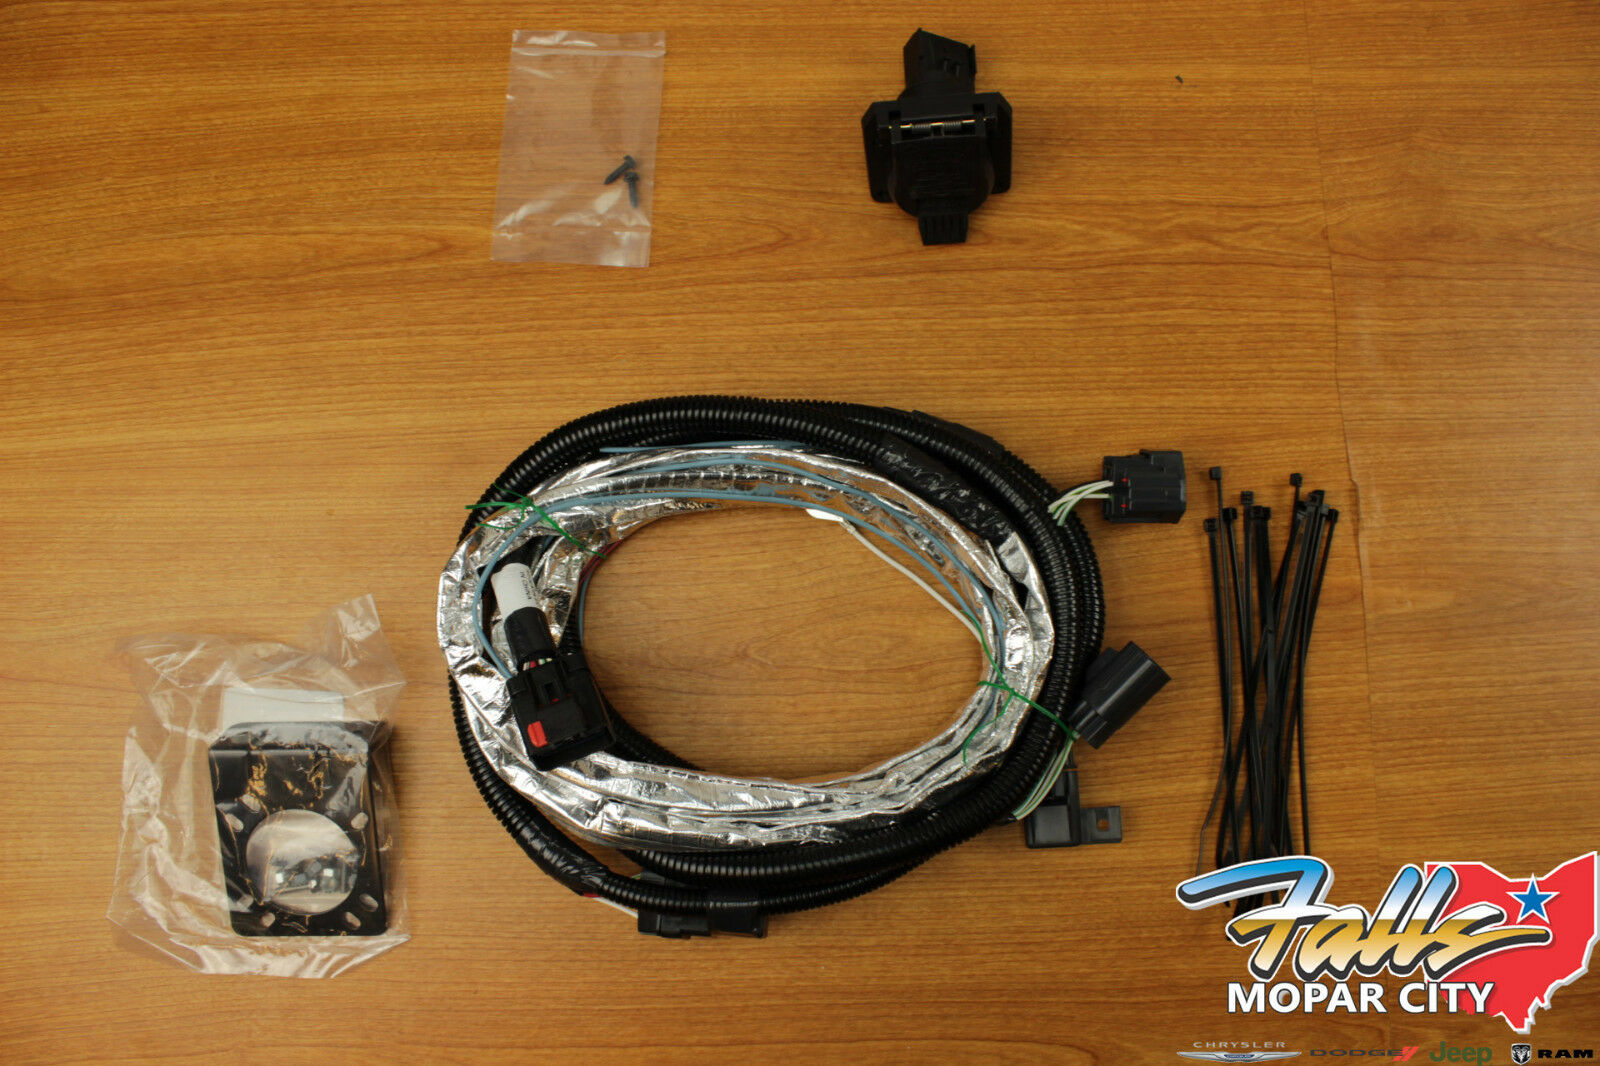 2007-2018 Jeep Wrangler JK 7-Way Trailer Tow Hitch Wiring Harness Mopar OEM  1 of 12FREE Shipping See More